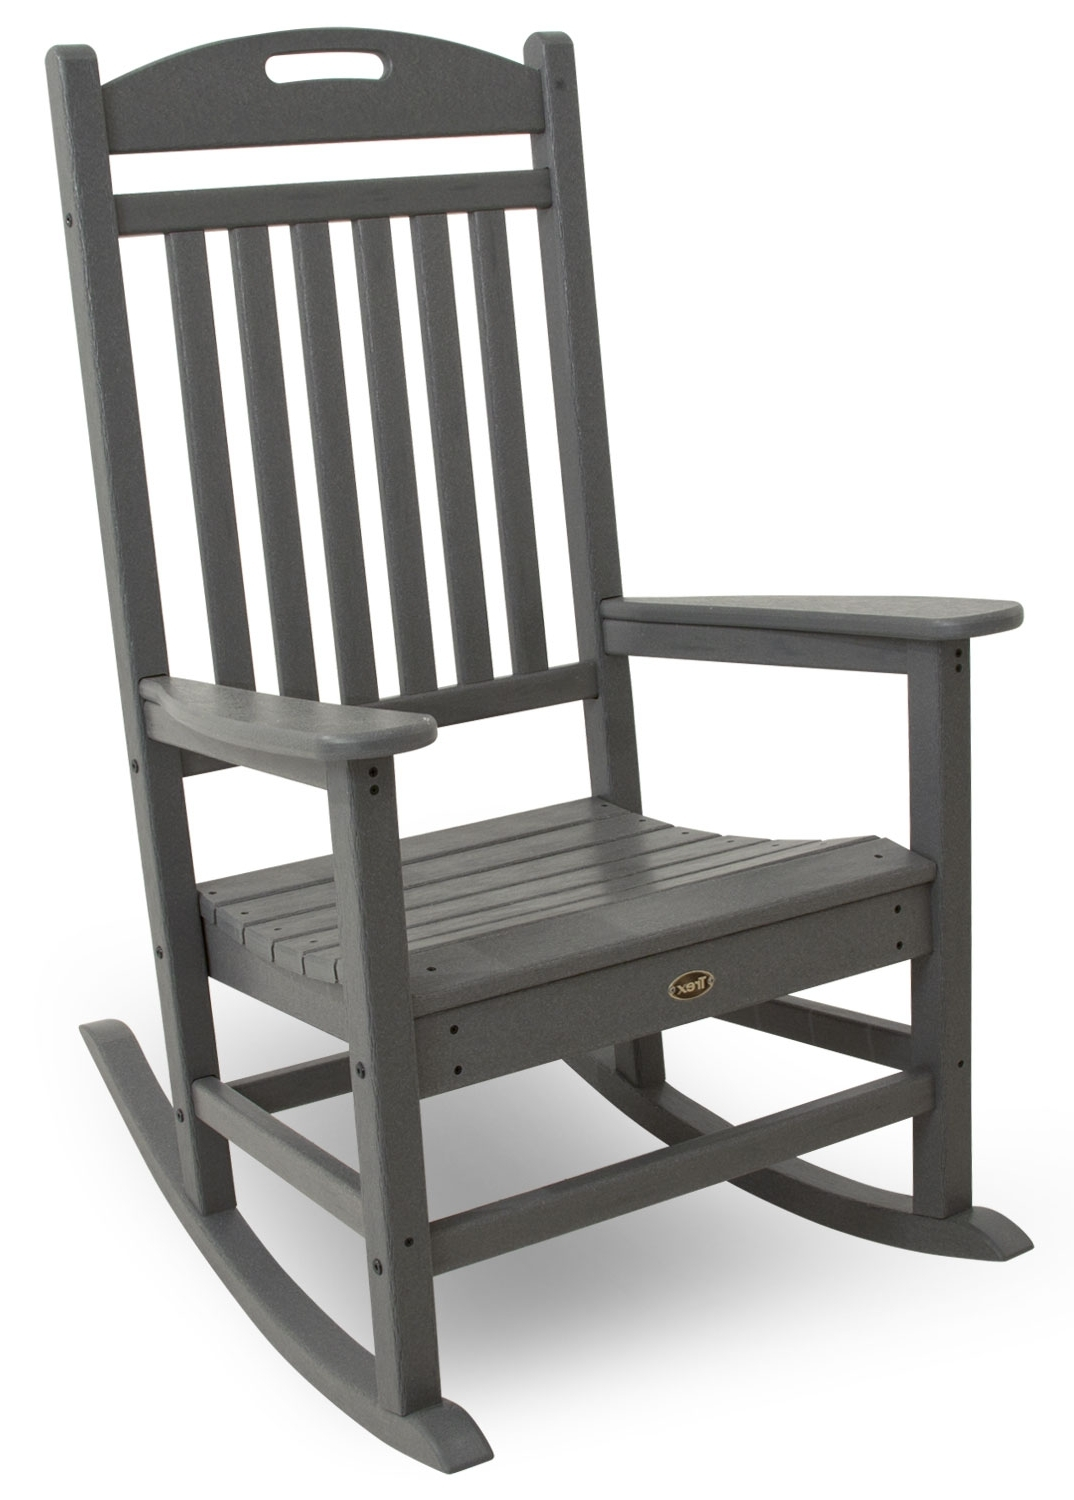 Livingroom : Shop Adams Mfg Corp Stackable Resin Rocking Chair At Pertaining To Current Stackable Patio Rocking Chairs (View 7 of 20)